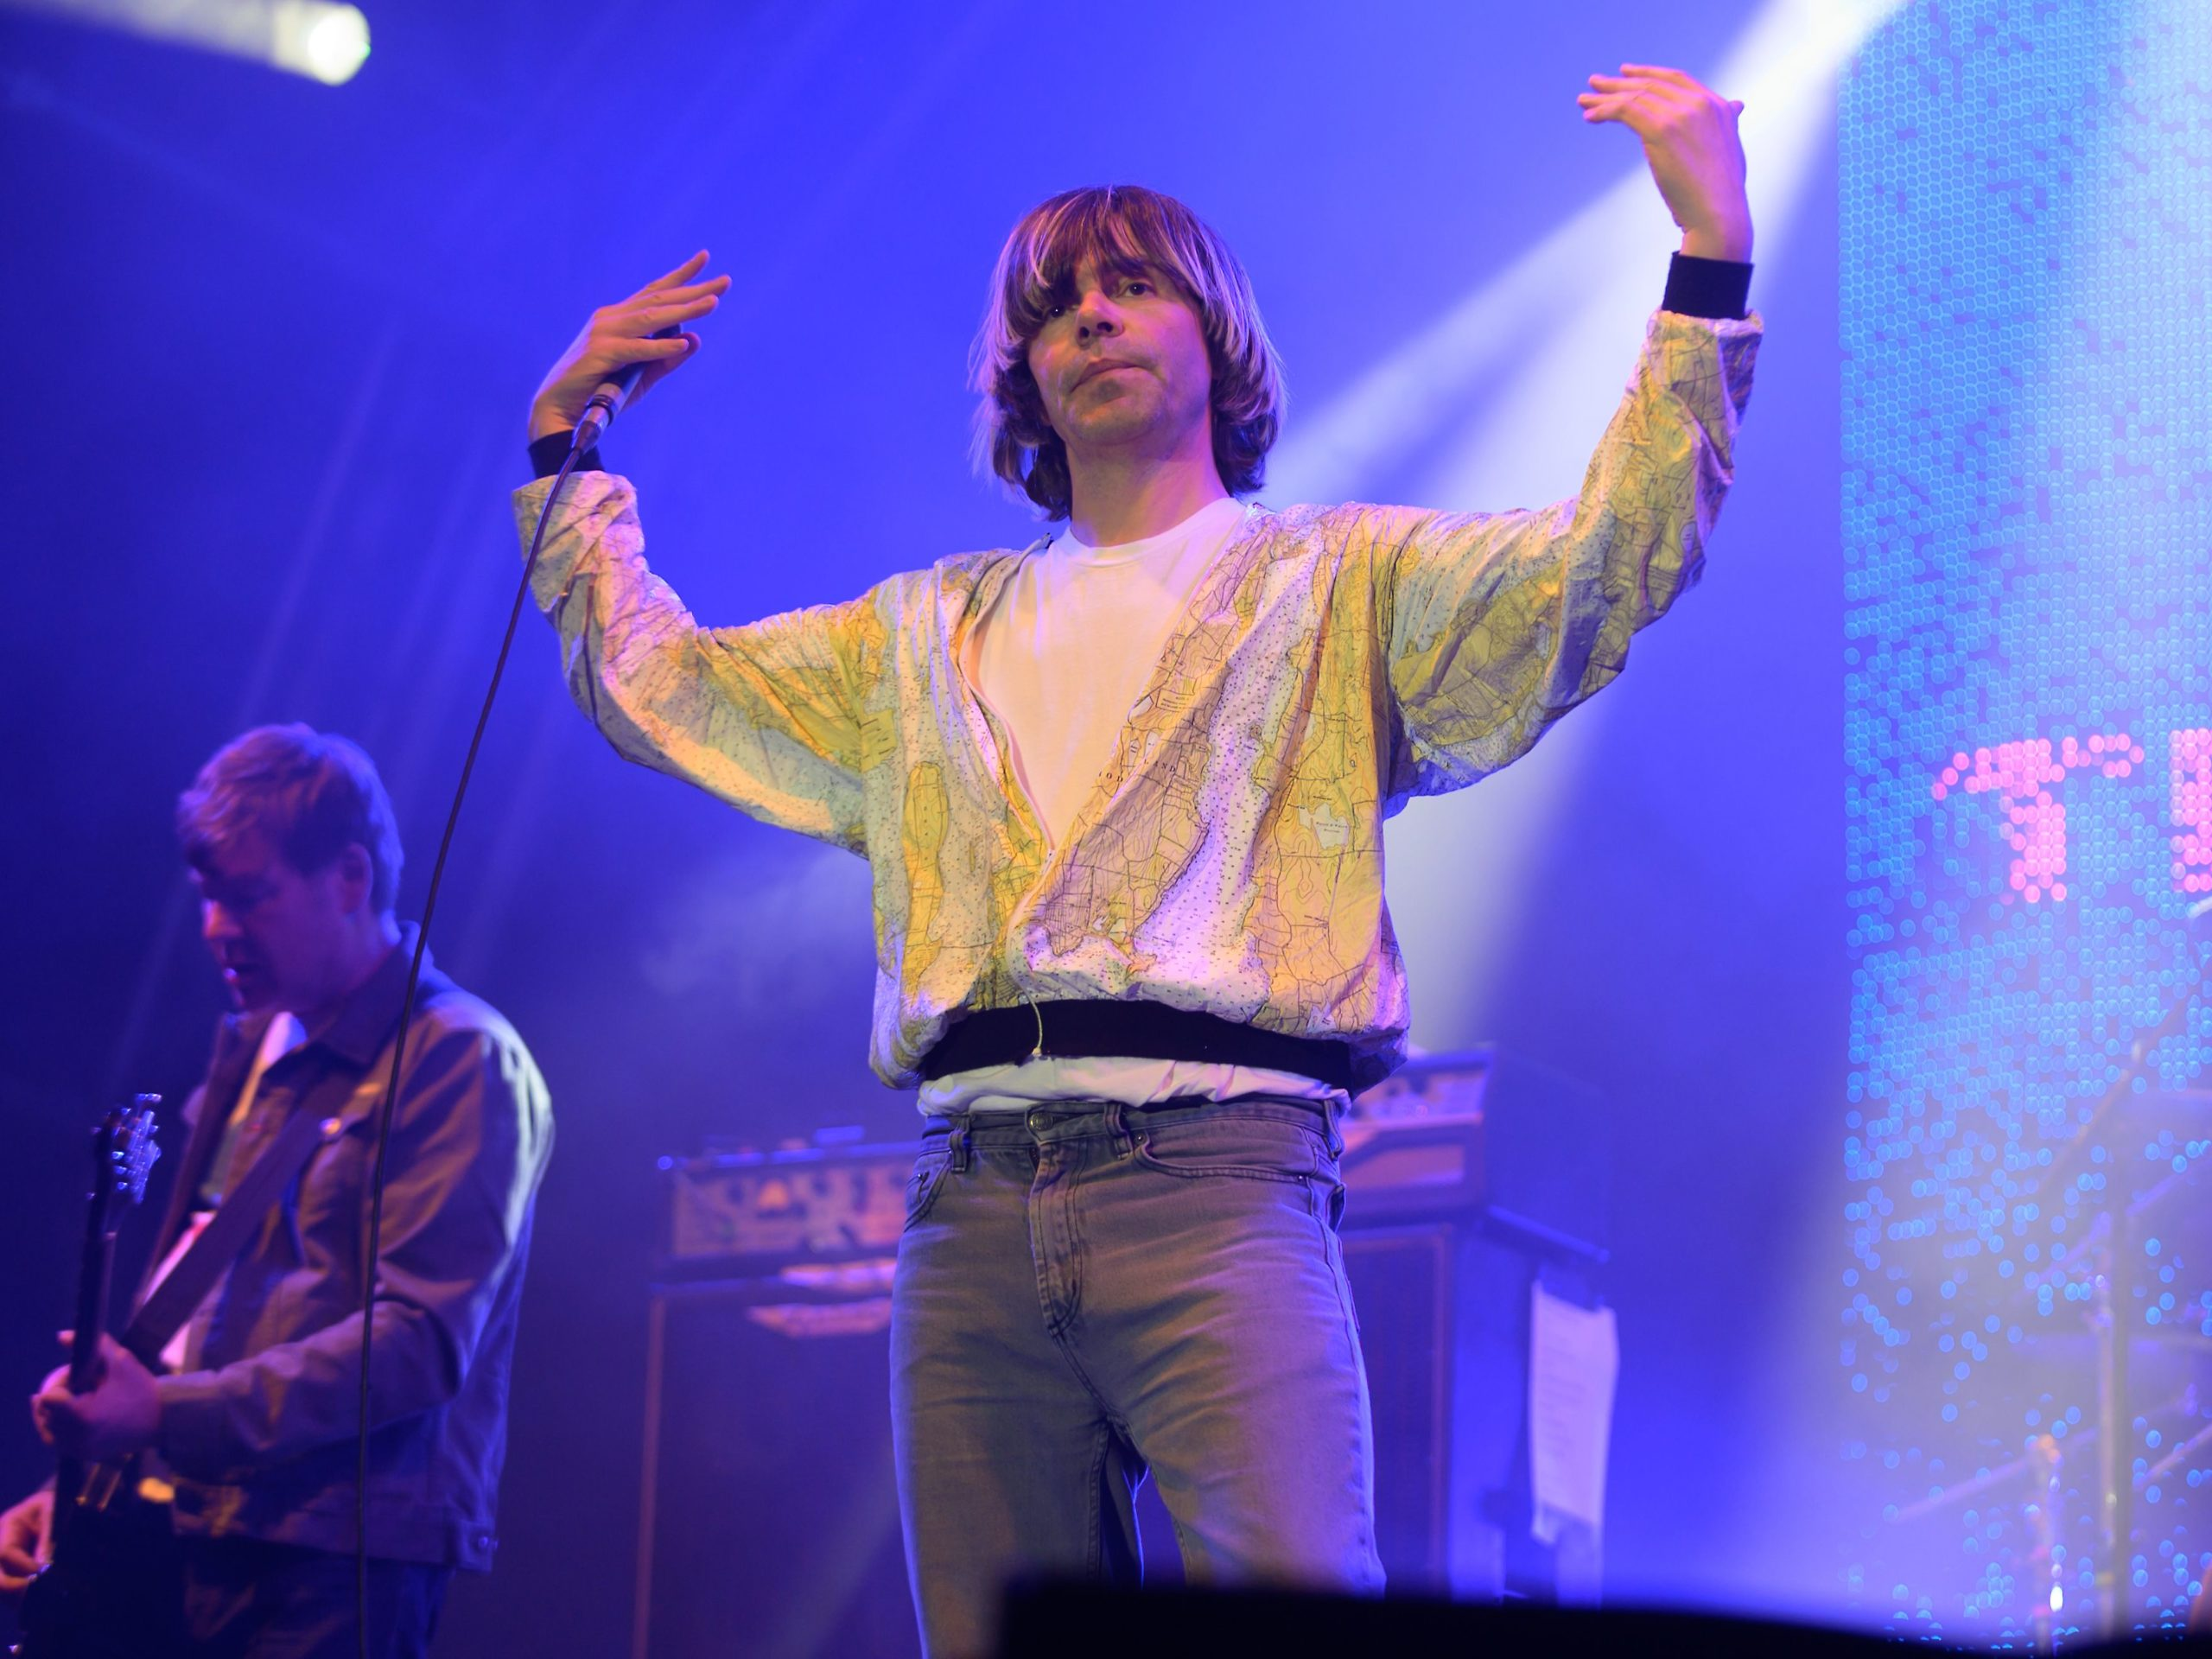 Martin Blunt and Tim Burgess of The Charlatans.